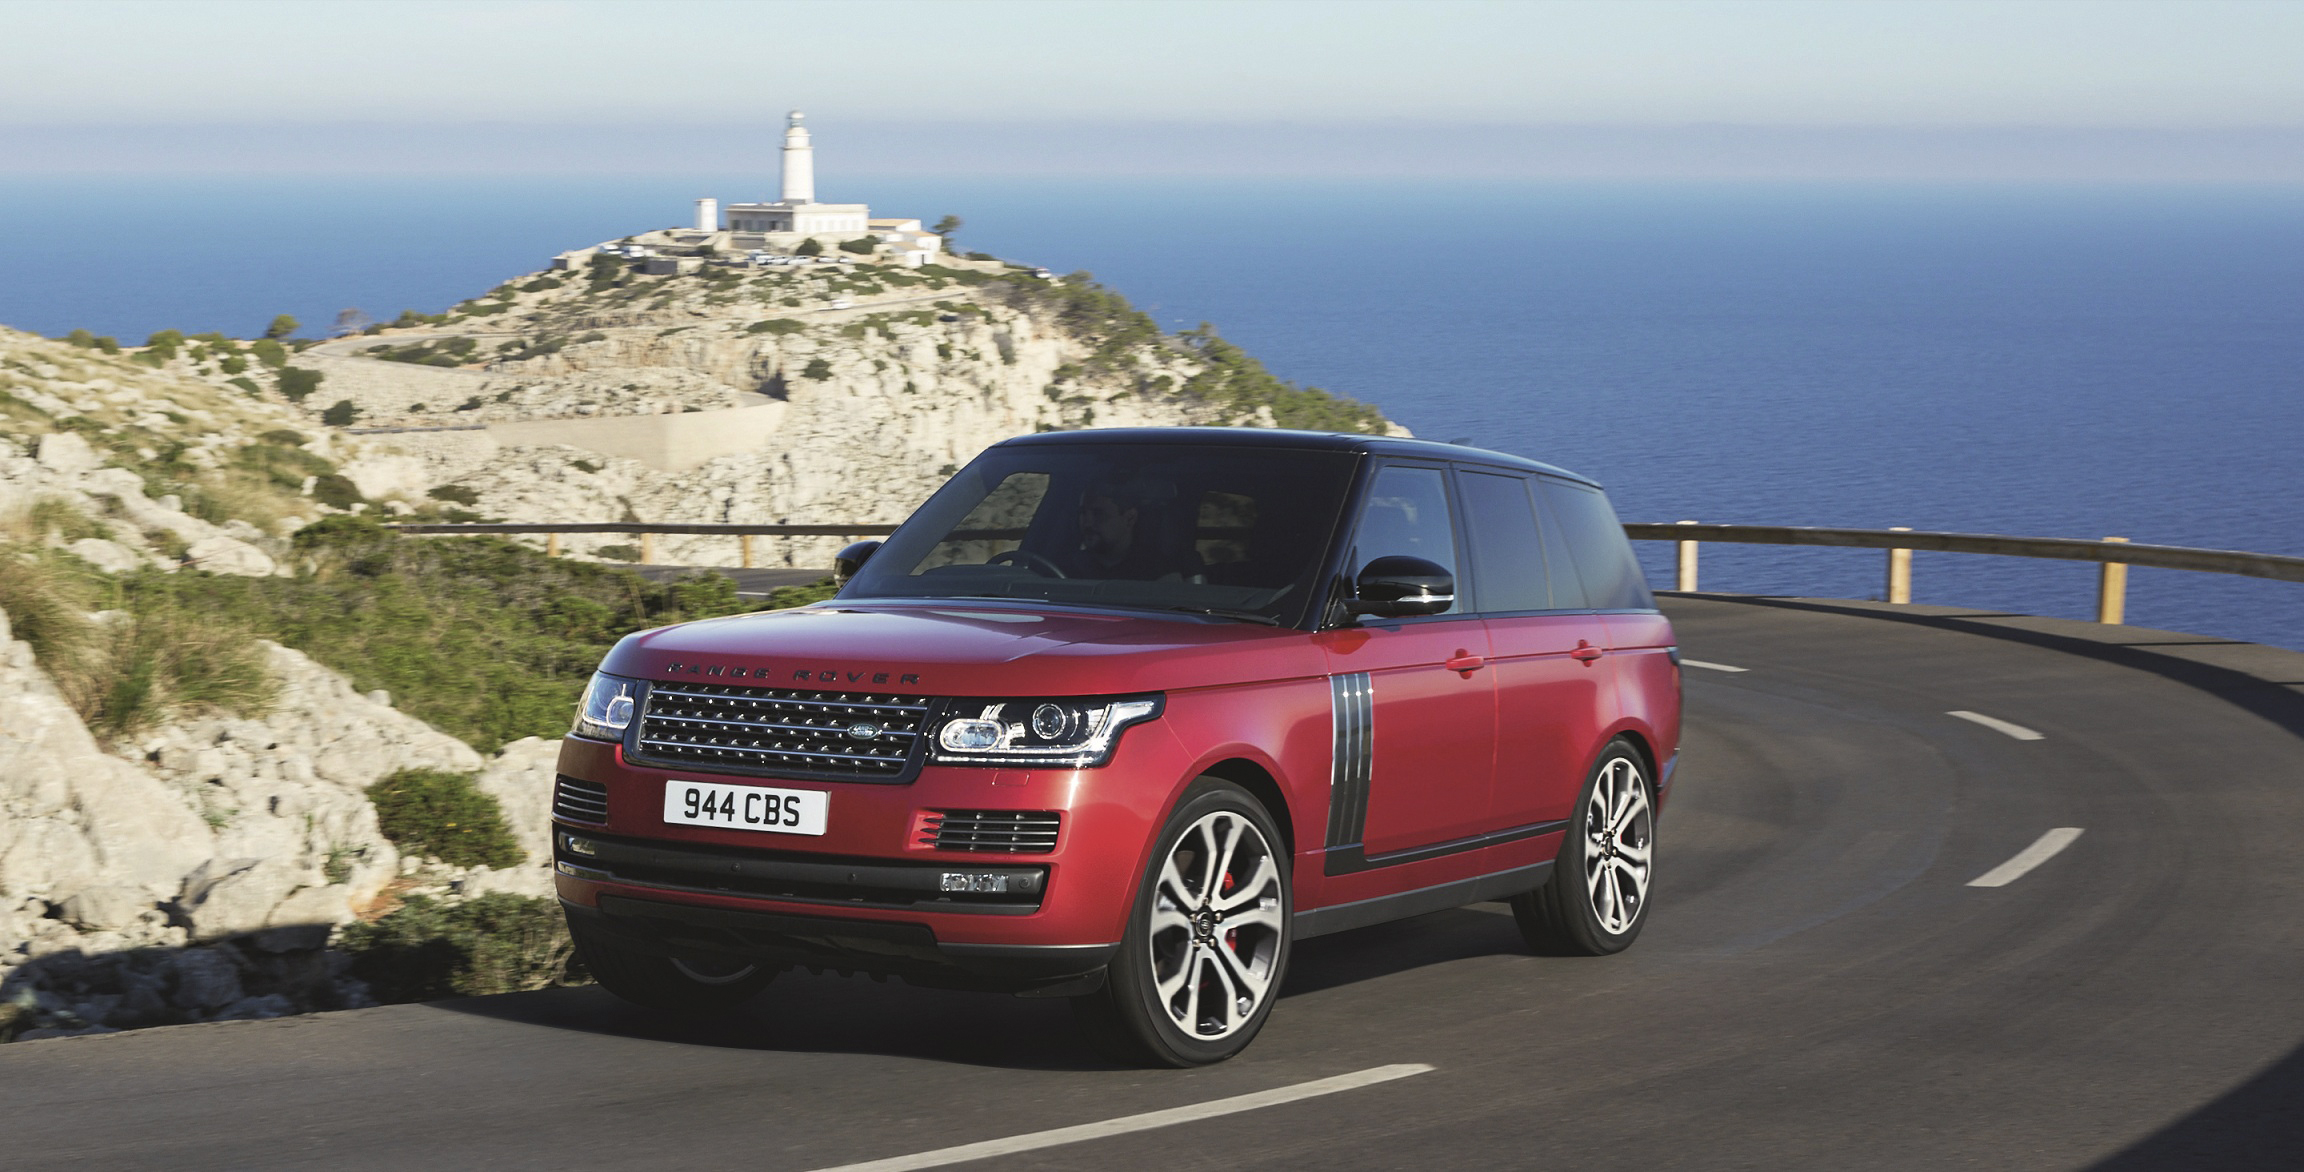 Check out the new Range Rover SVAutobiography Dynamic